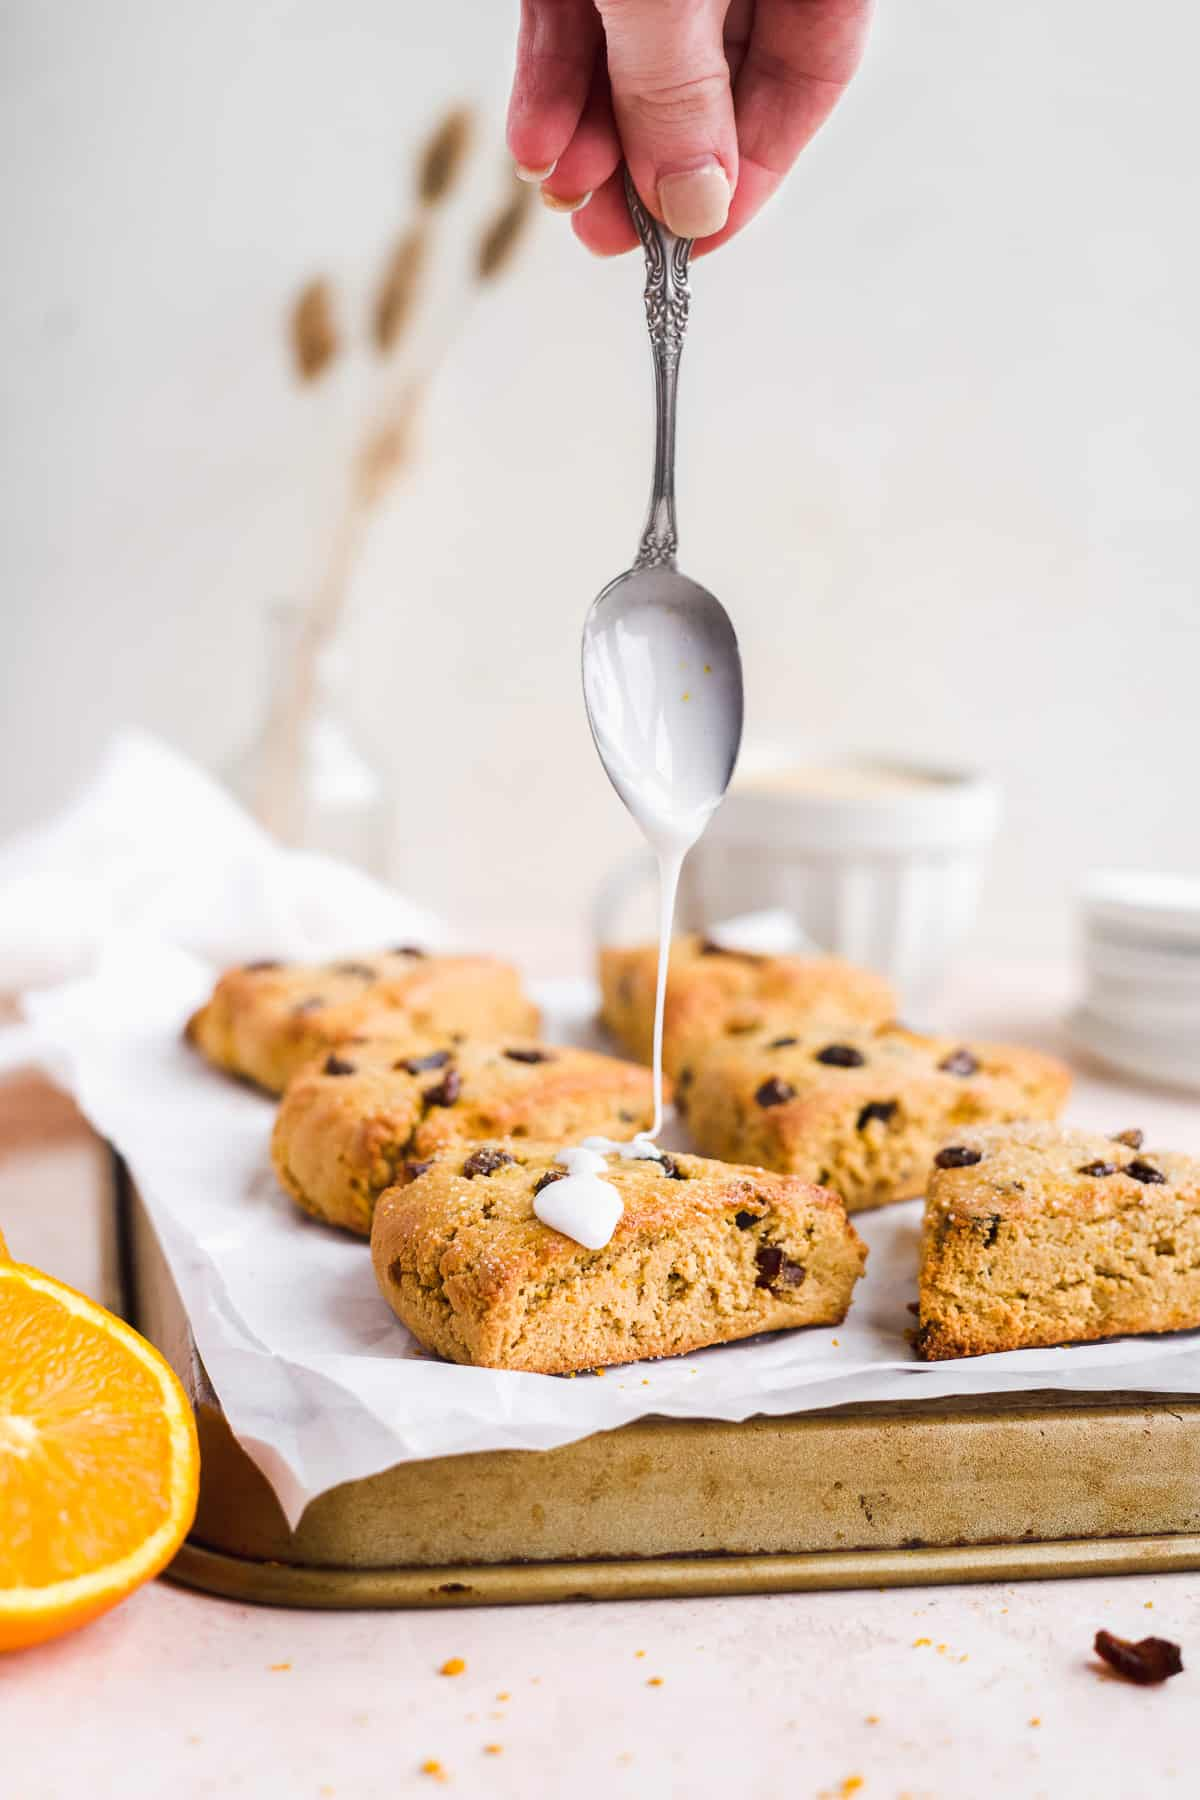 Hand drizzling white icing on top of baked scones on a baking sheet.